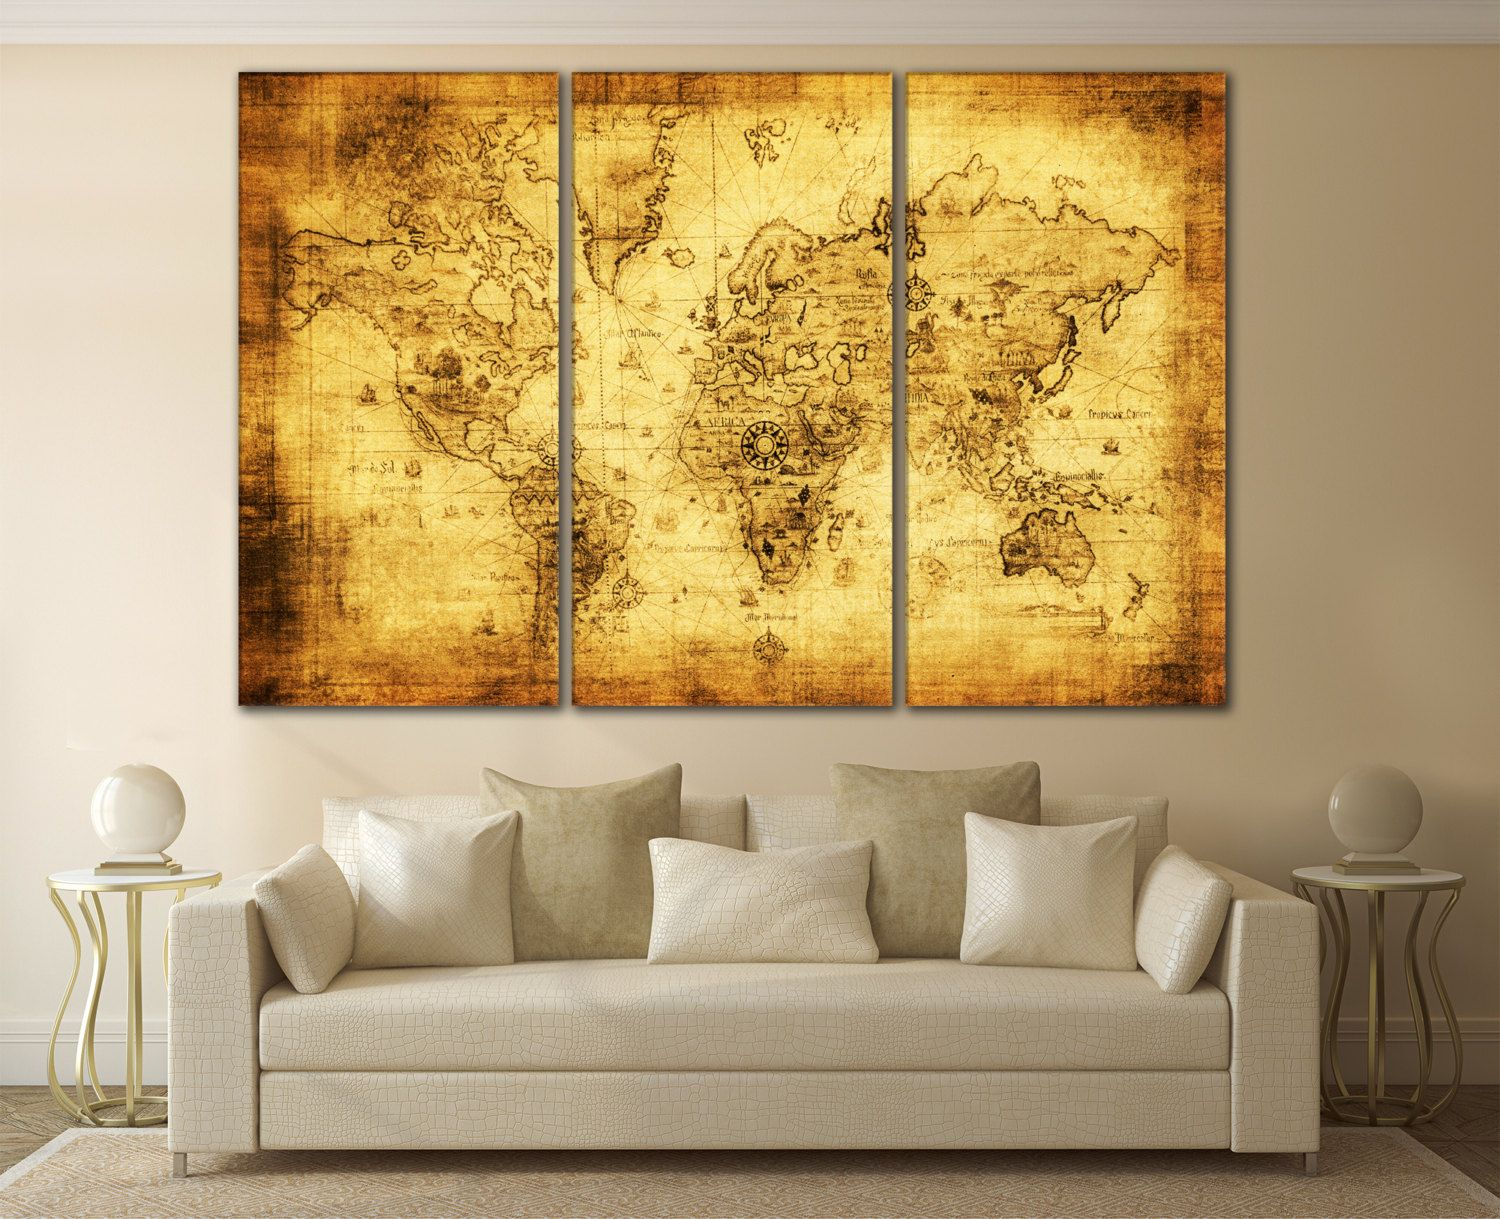 Large wall art world map canvas print large world map wall art large wall art world map canvas print large world map wall art living room gumiabroncs Image collections